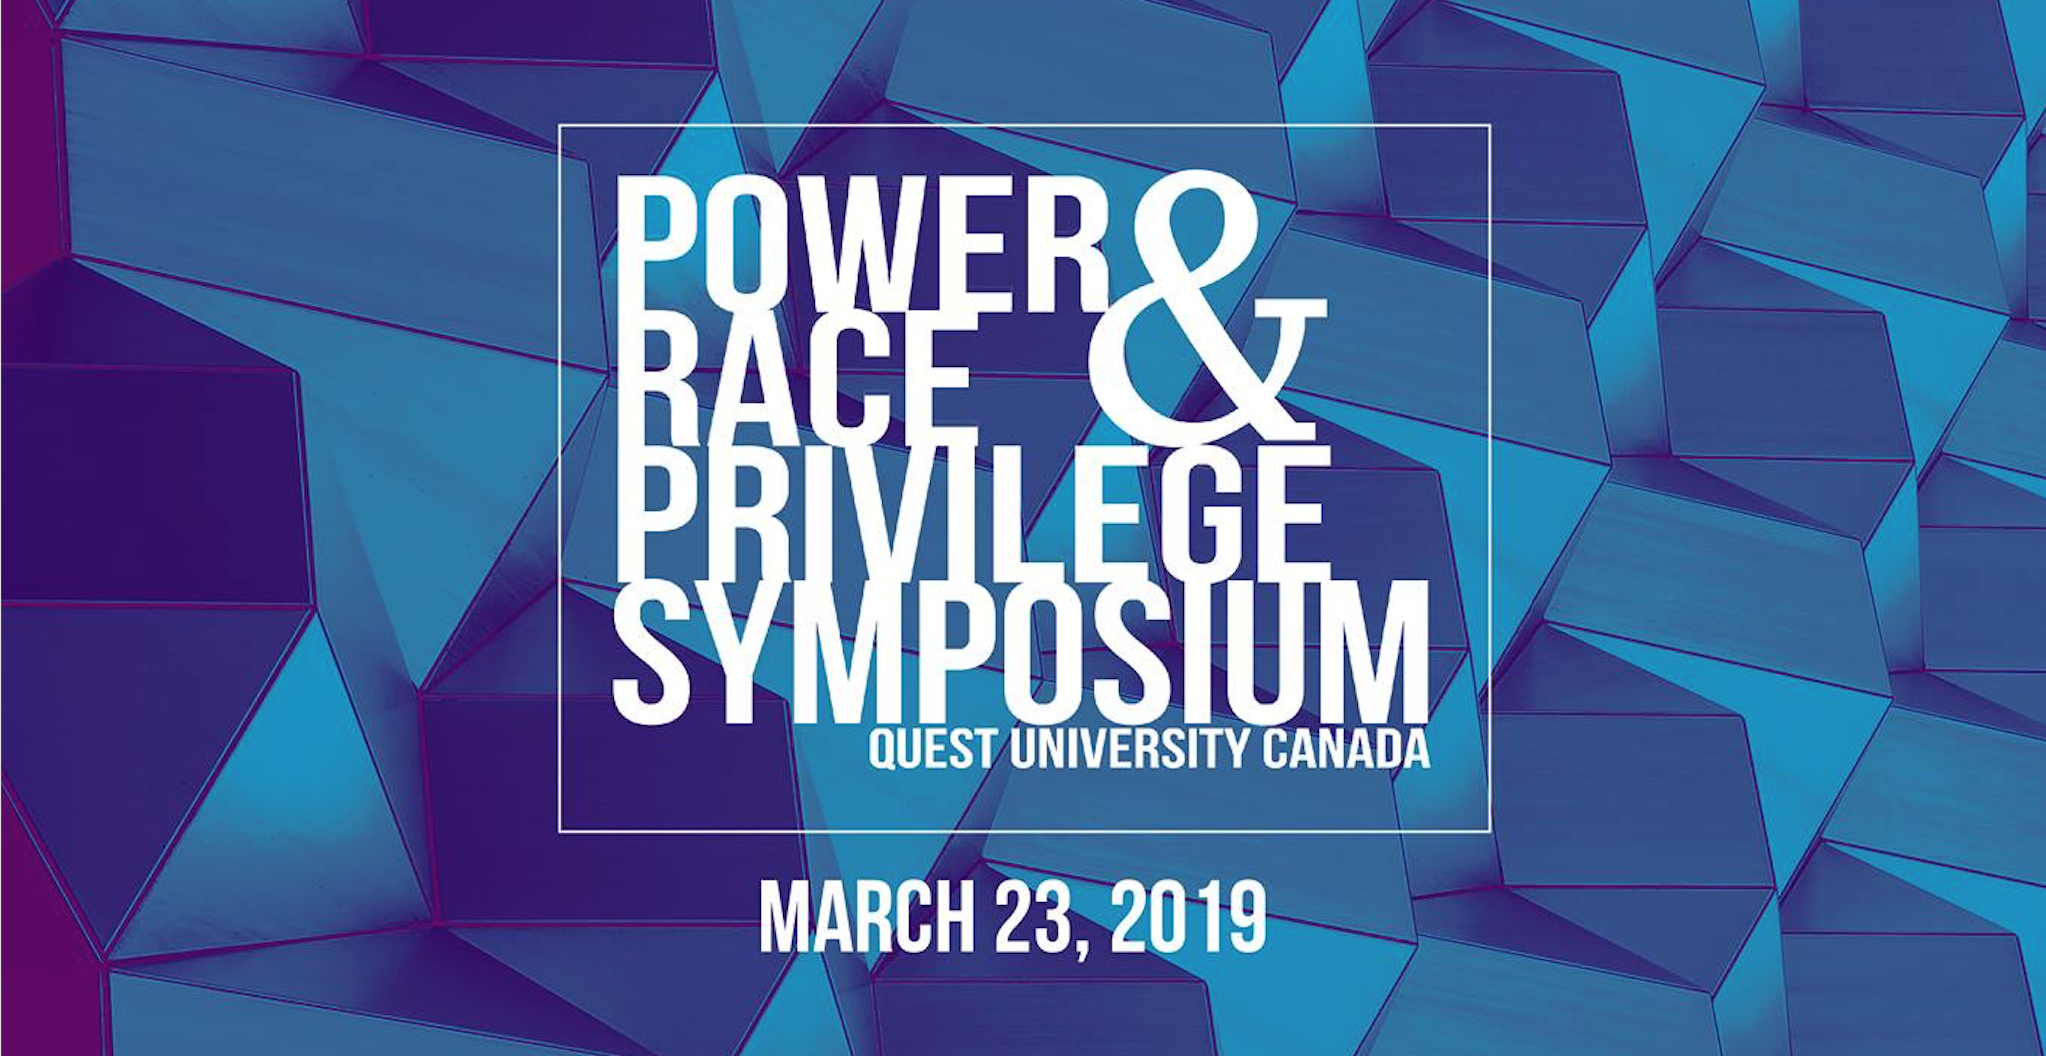 Textured blue background. White text inside a box: Power race & privilege symposium. March 23, 2019